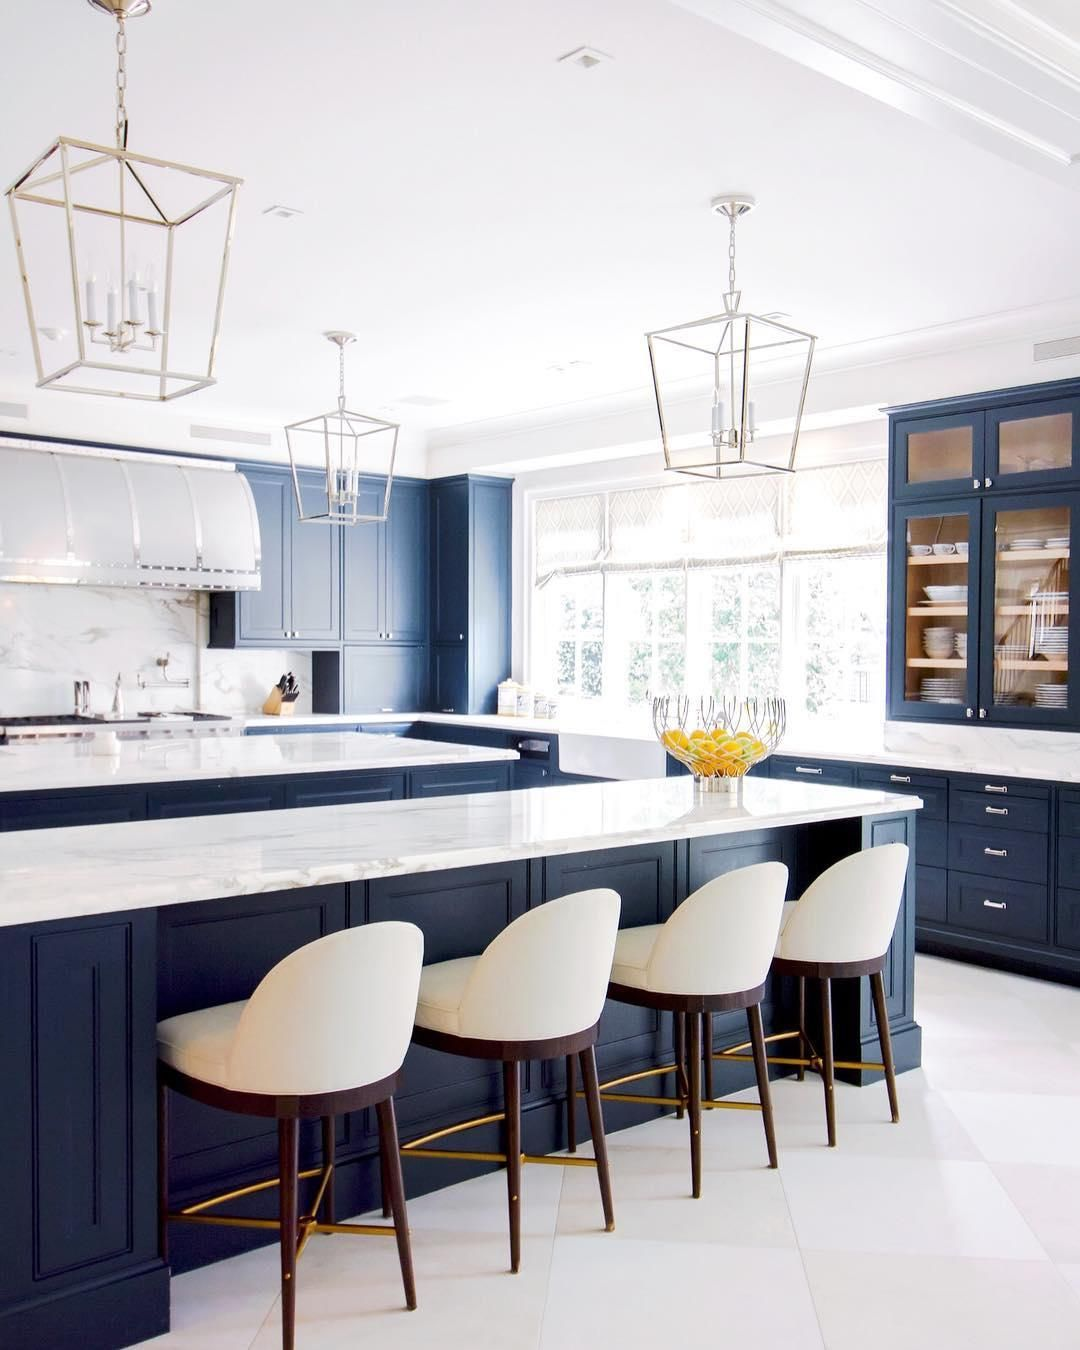 Luxurious and livable kitchen designed by @laurauinteriordesign ...